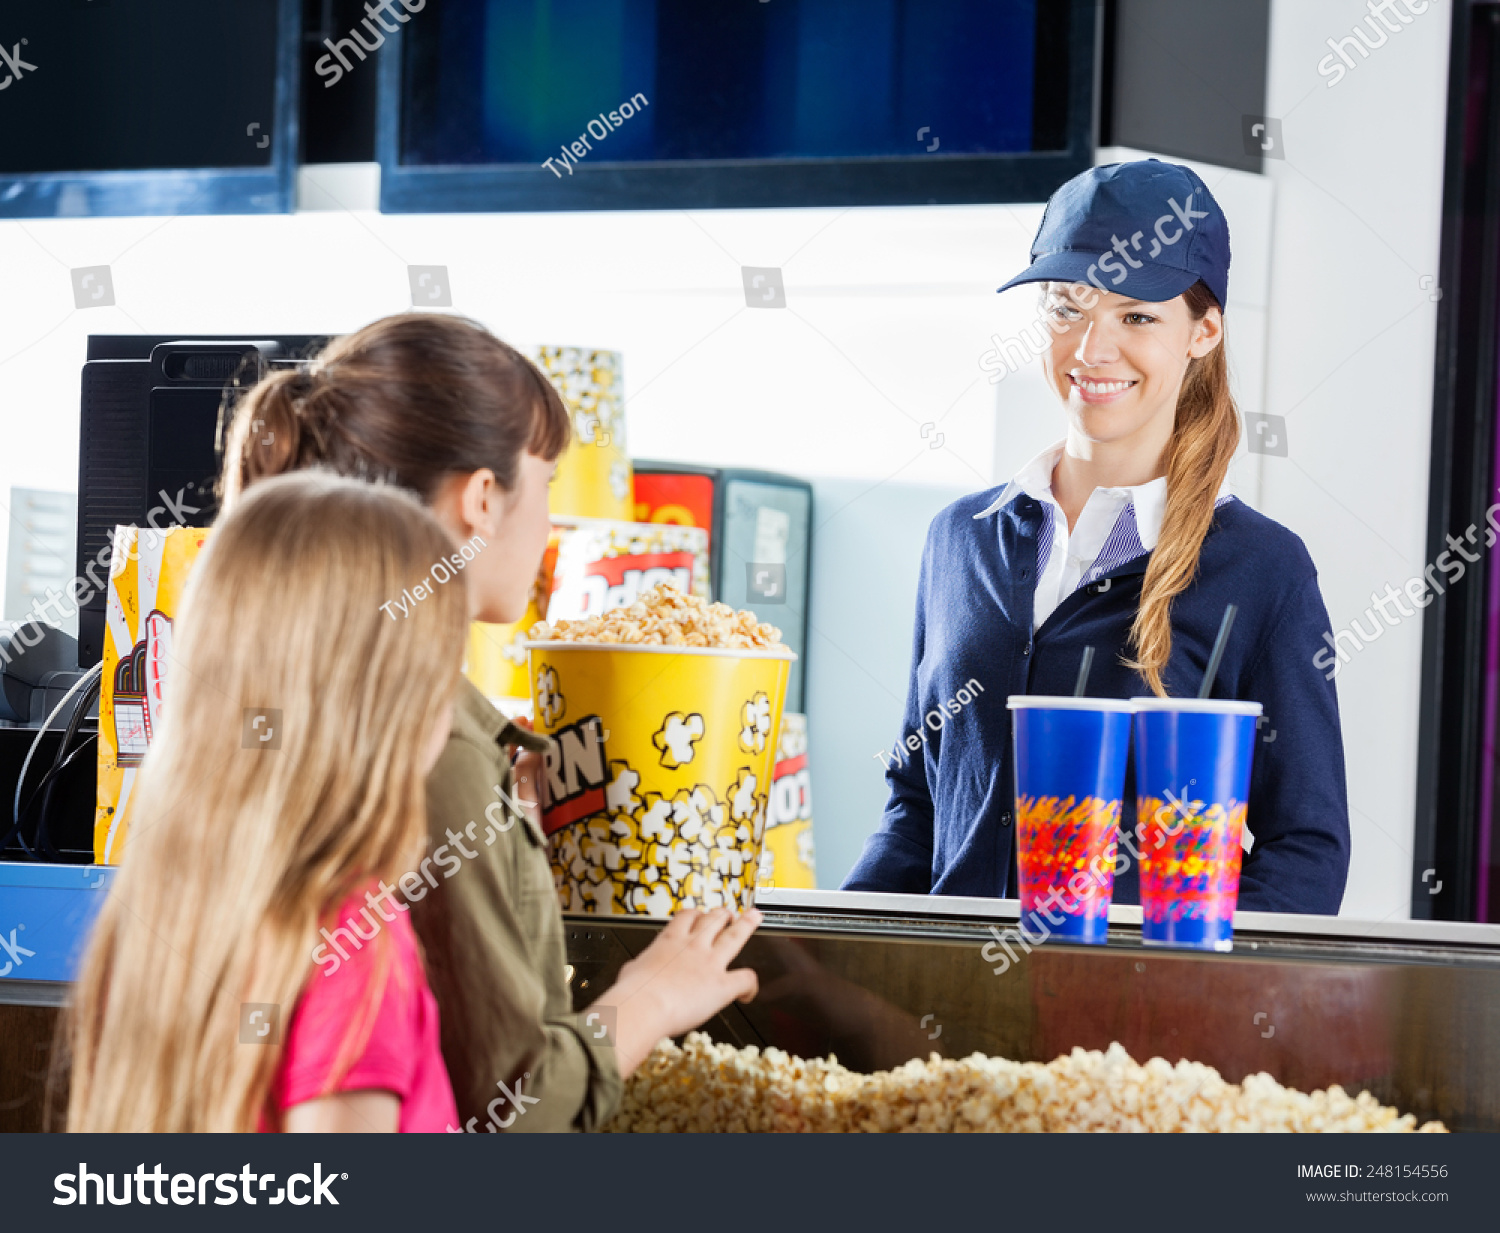 little girls buying popcorn drinks female stock photo  little girls buying popcorn and drinks from female seller at cinema concession stand